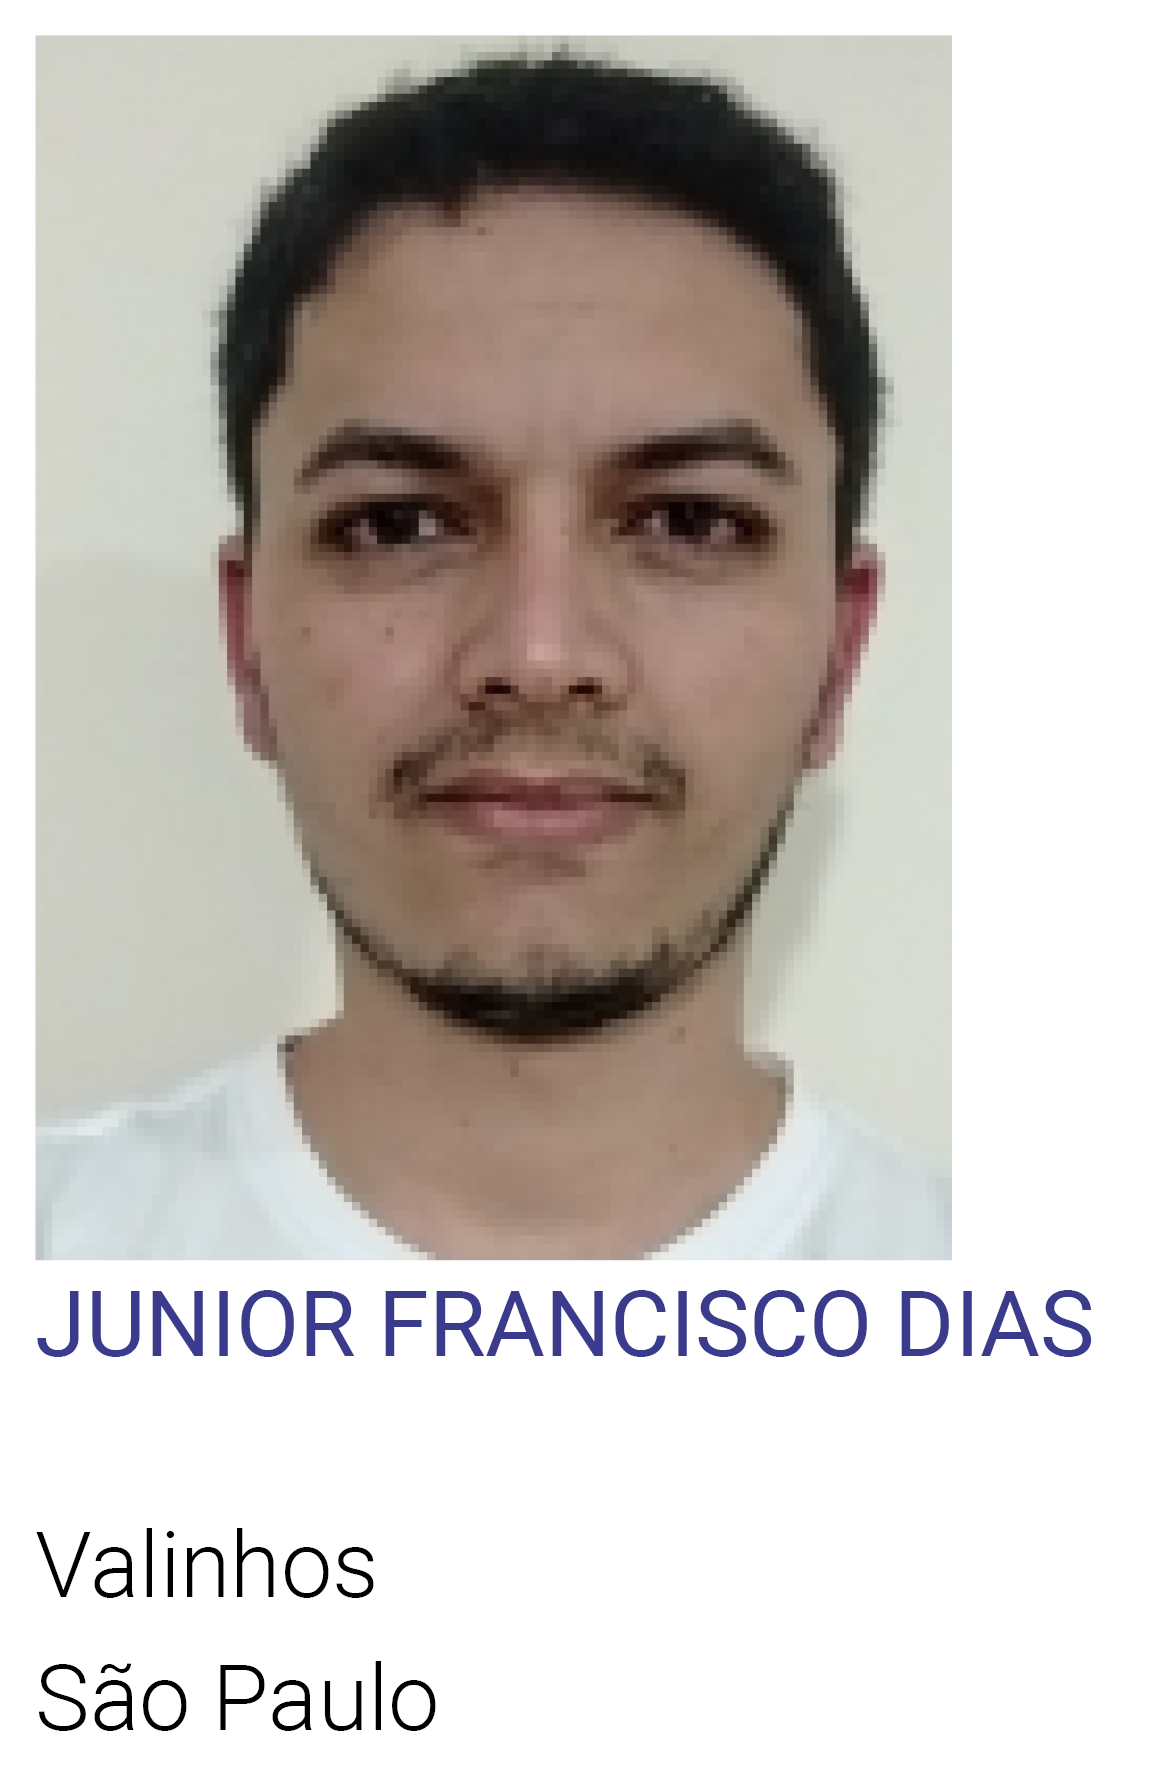 JUNIOR FRANCISCO DIAS